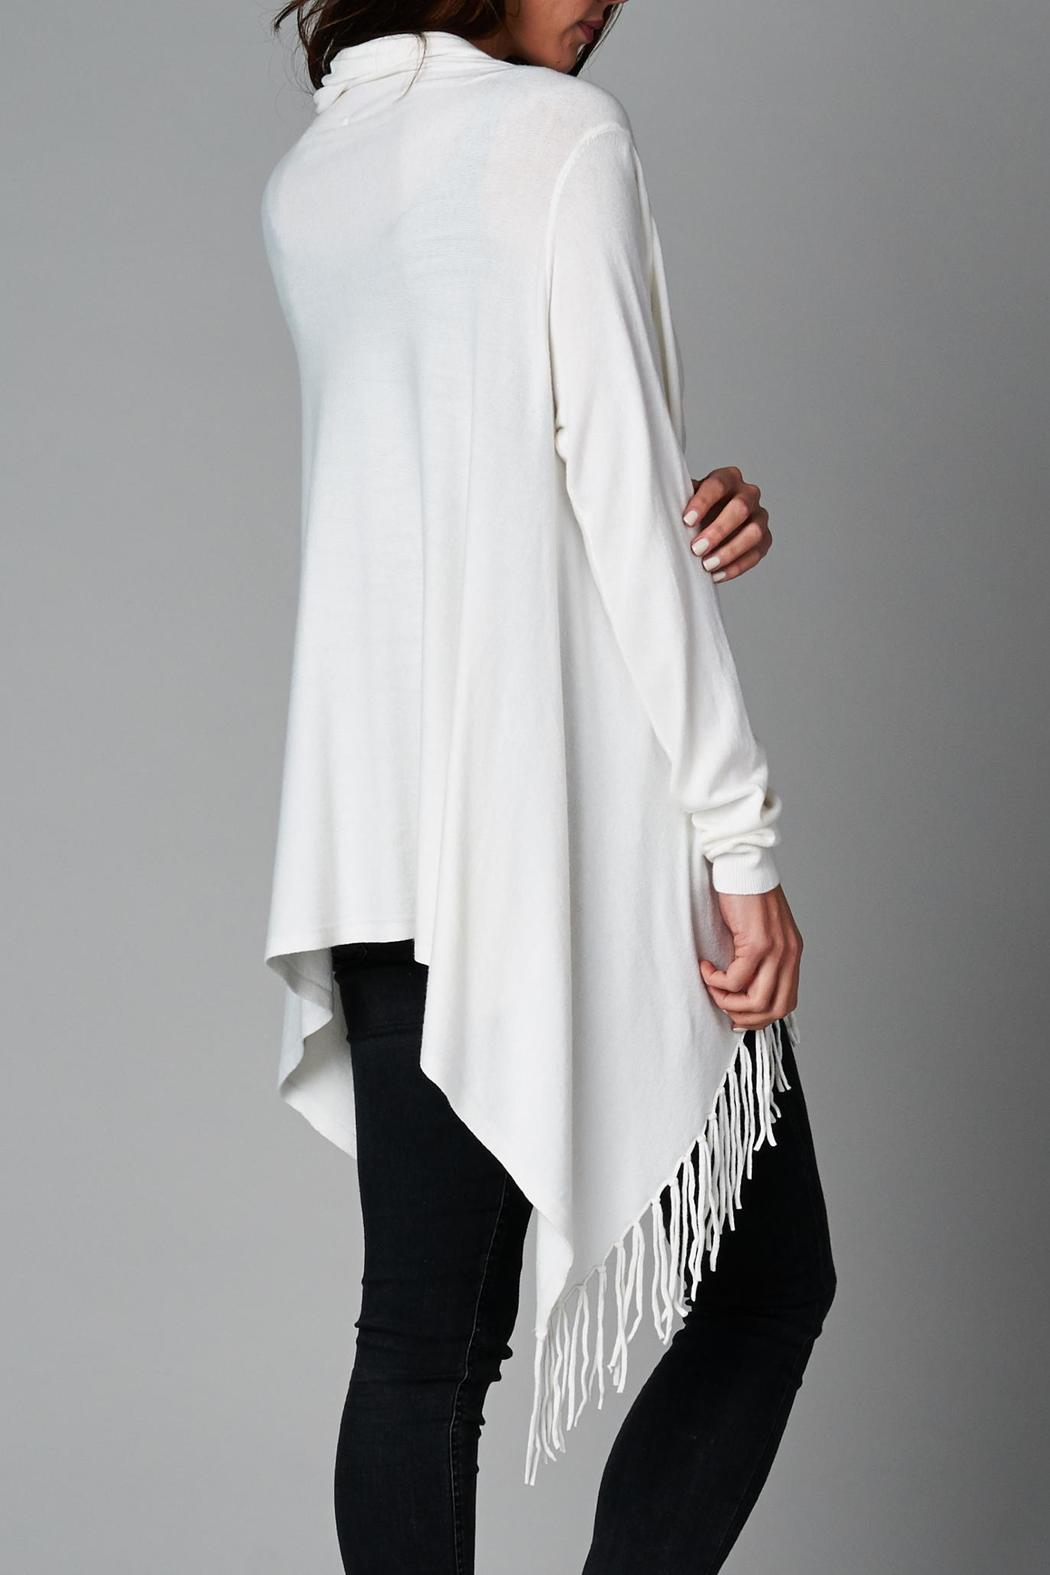 Lovestitch Fringe Wrap Cardigan - Front Cropped Image - Lovestitch Fringe Wrap Cardigan From Illinois By LUXE Wearhouse